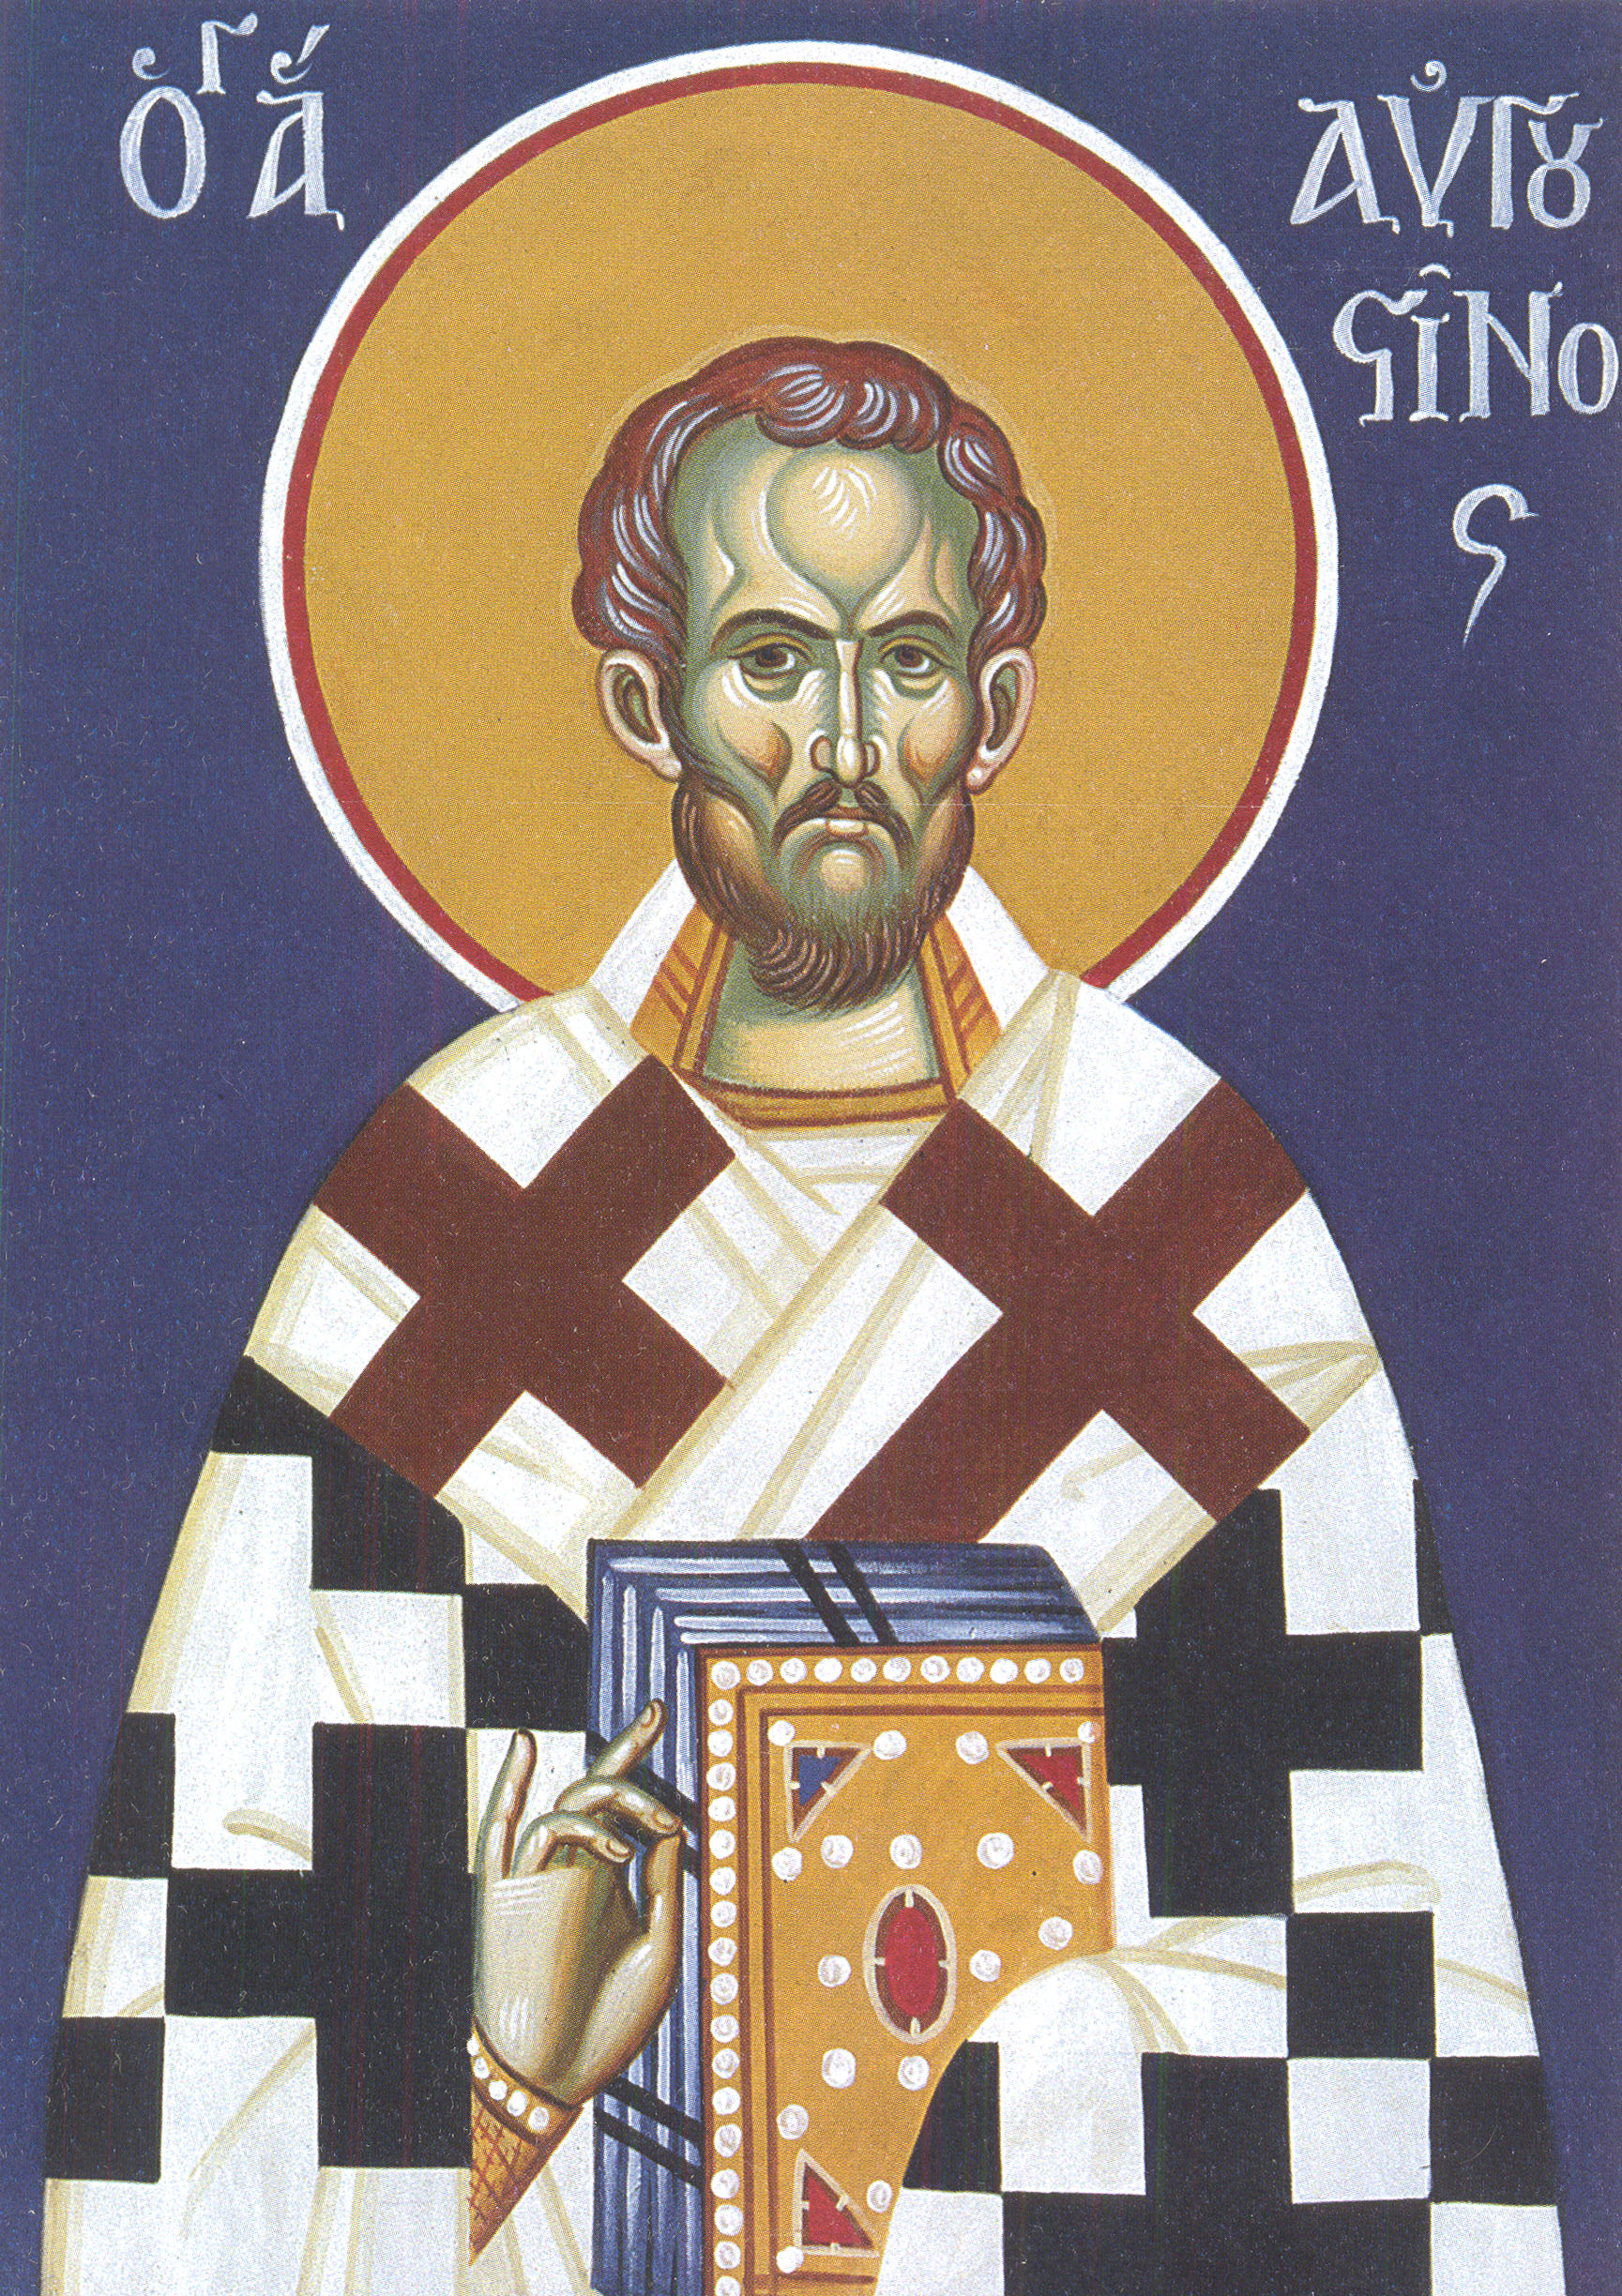 https://vatopaidi.files.wordpress.com/2011/06/augustine.jpg